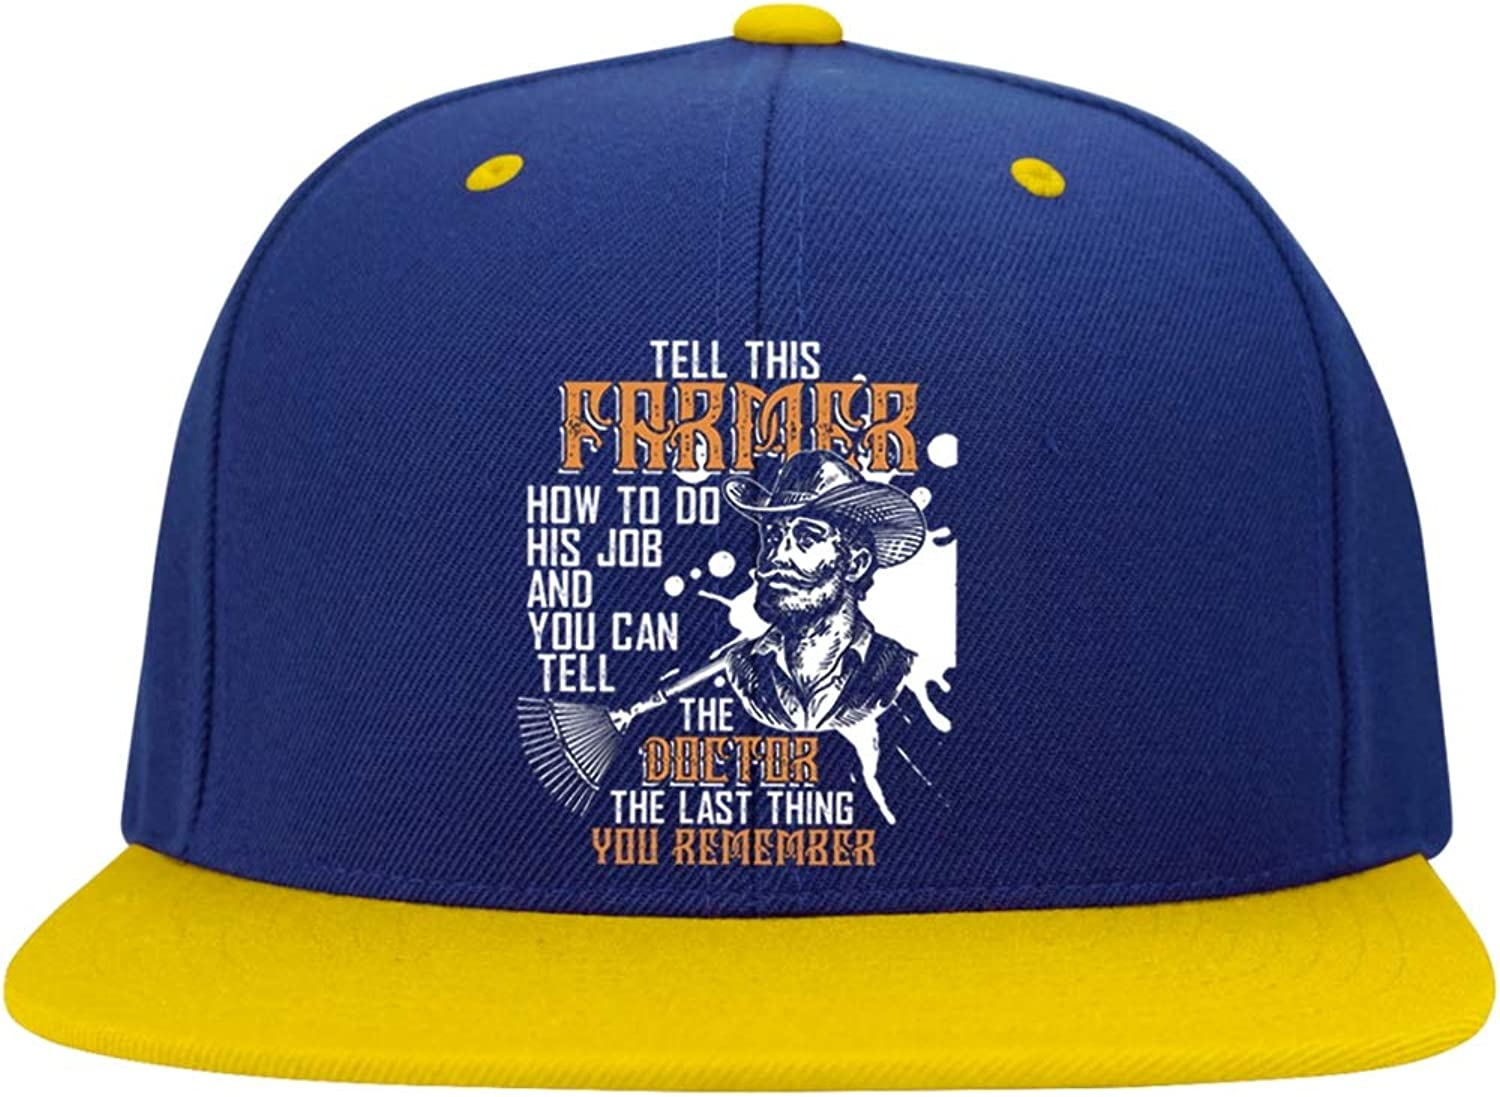 - FLOSTORE Tell This Farmer Cap, Cap, Cap, Don't Mess This Farmer Profile Snapback Hat ae69d9